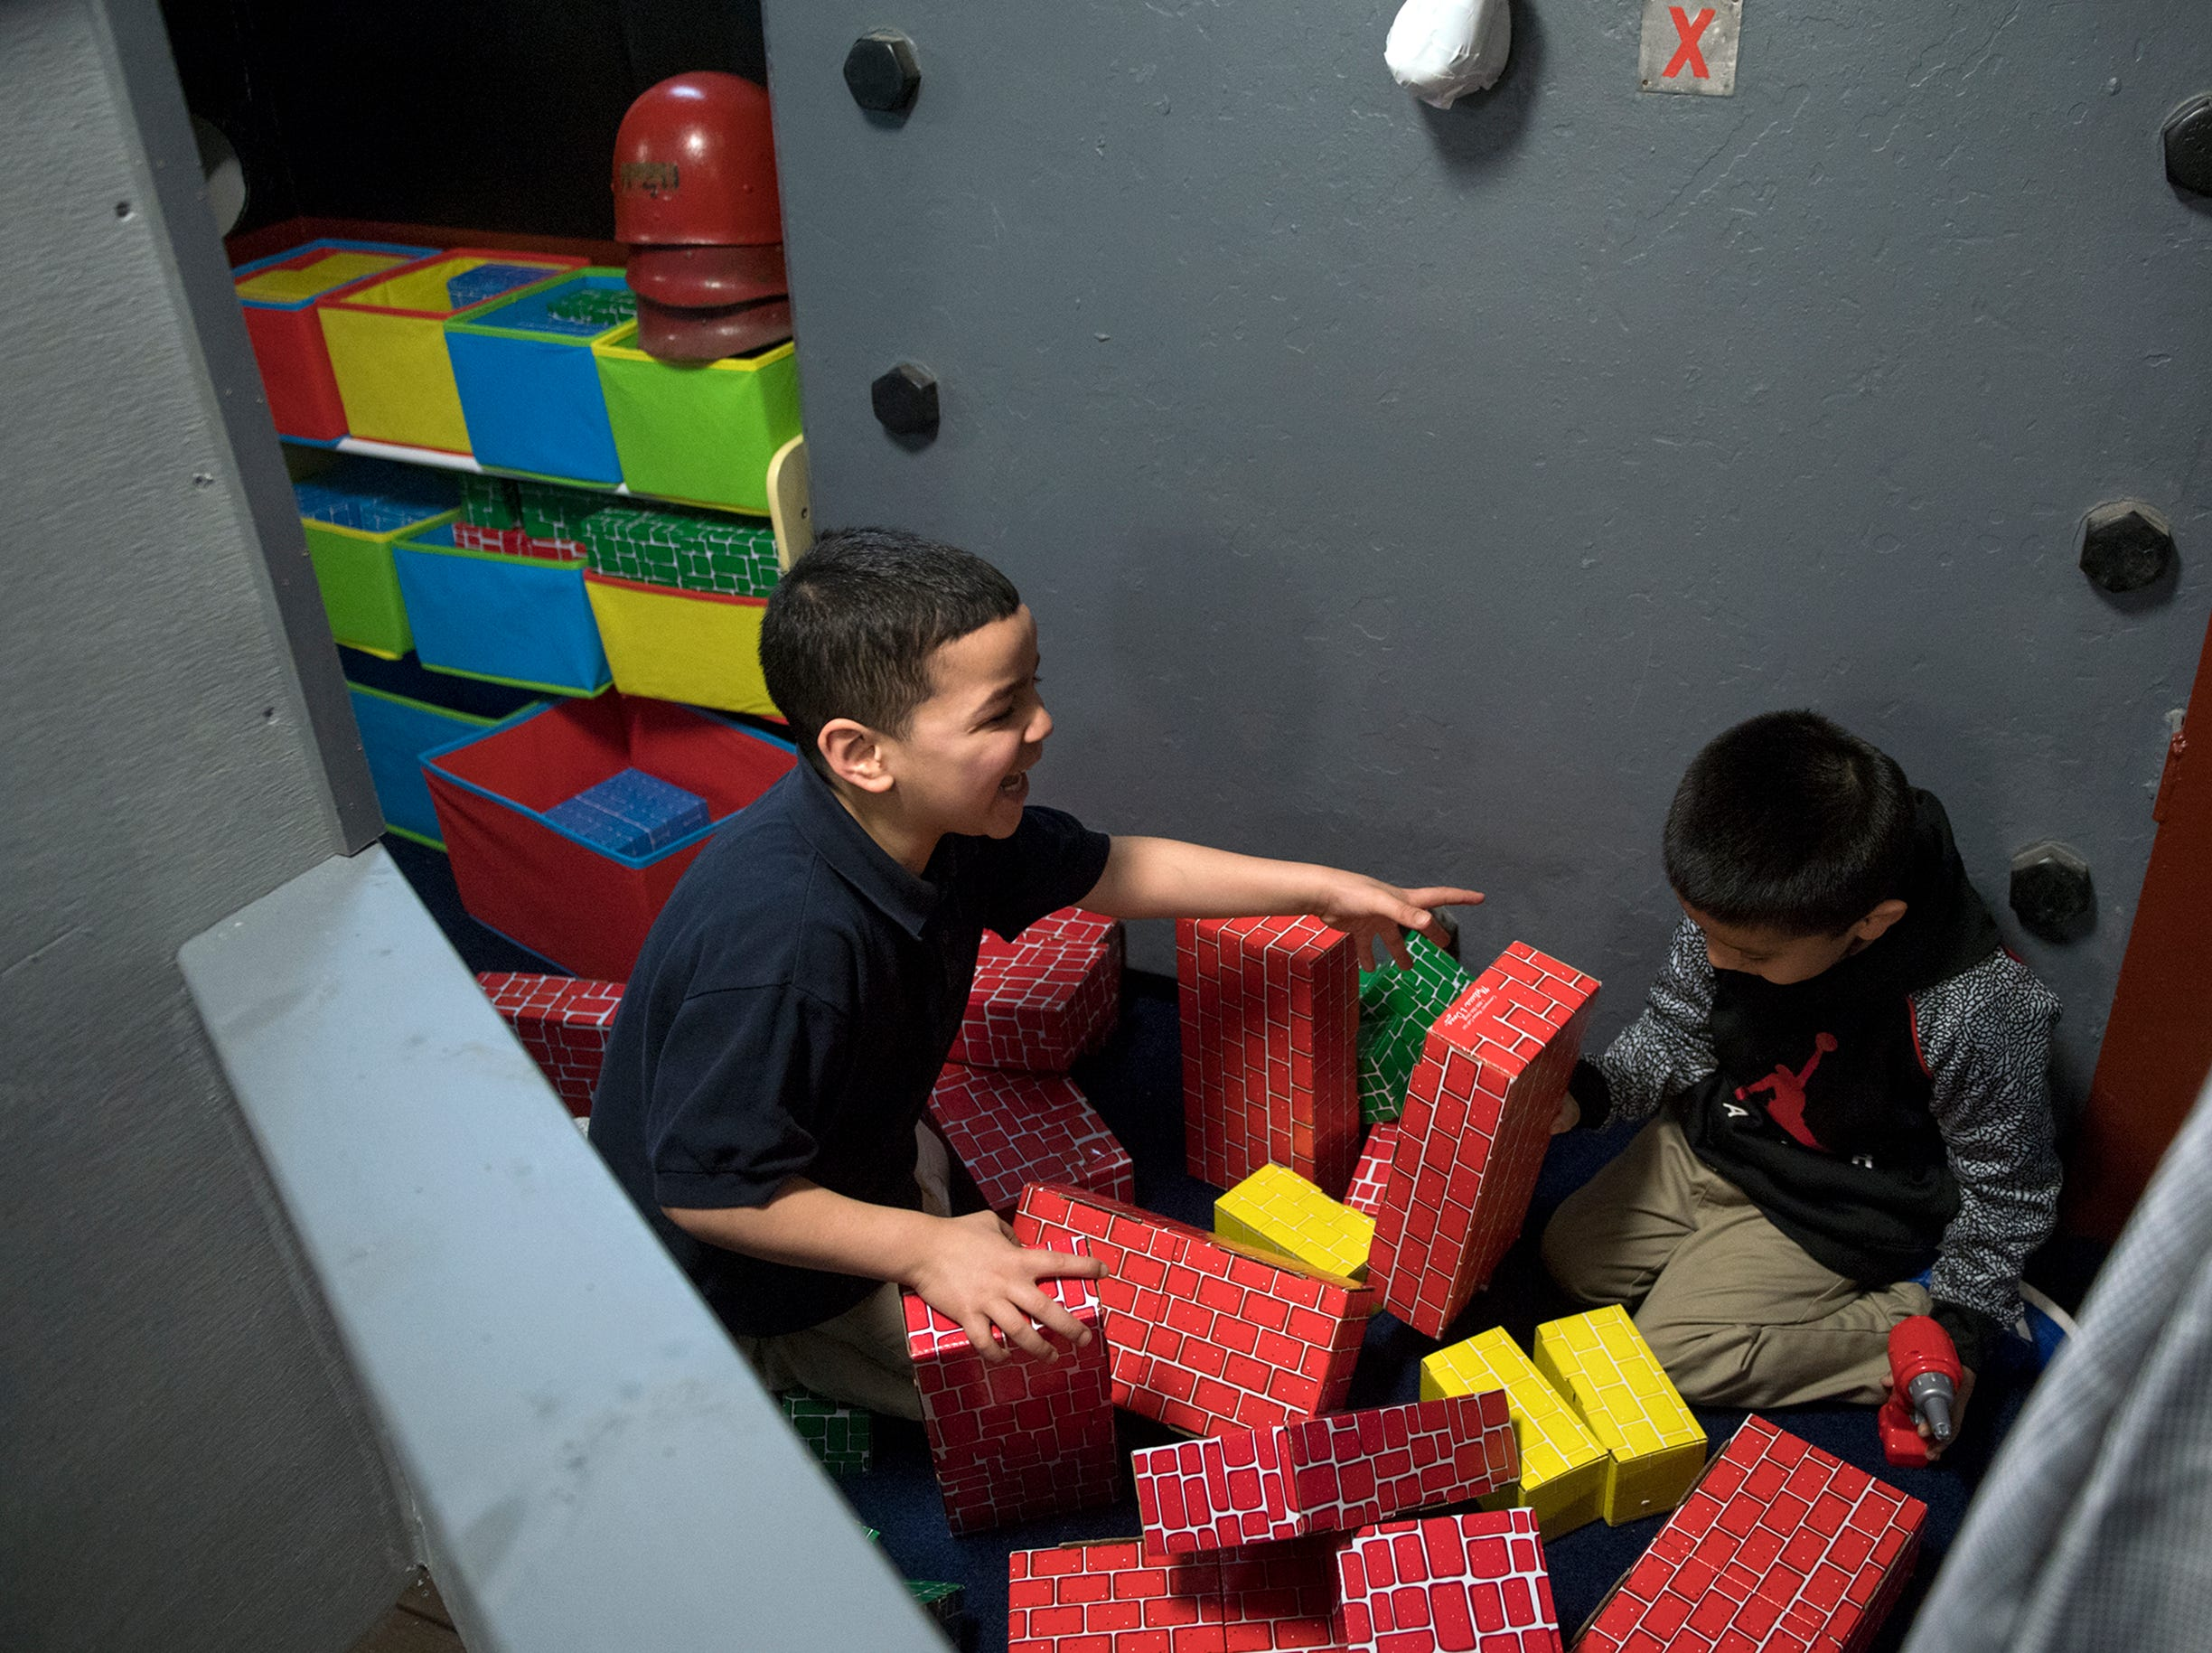 Pre-schoolers Joandel Feliciano, left, and Edward Tellez laugh as their brick wall collapses at Jason's Kids Kompartment Thursday, March 21, 2019 aboard the USS New Jersey battleship in Camden, N.J.